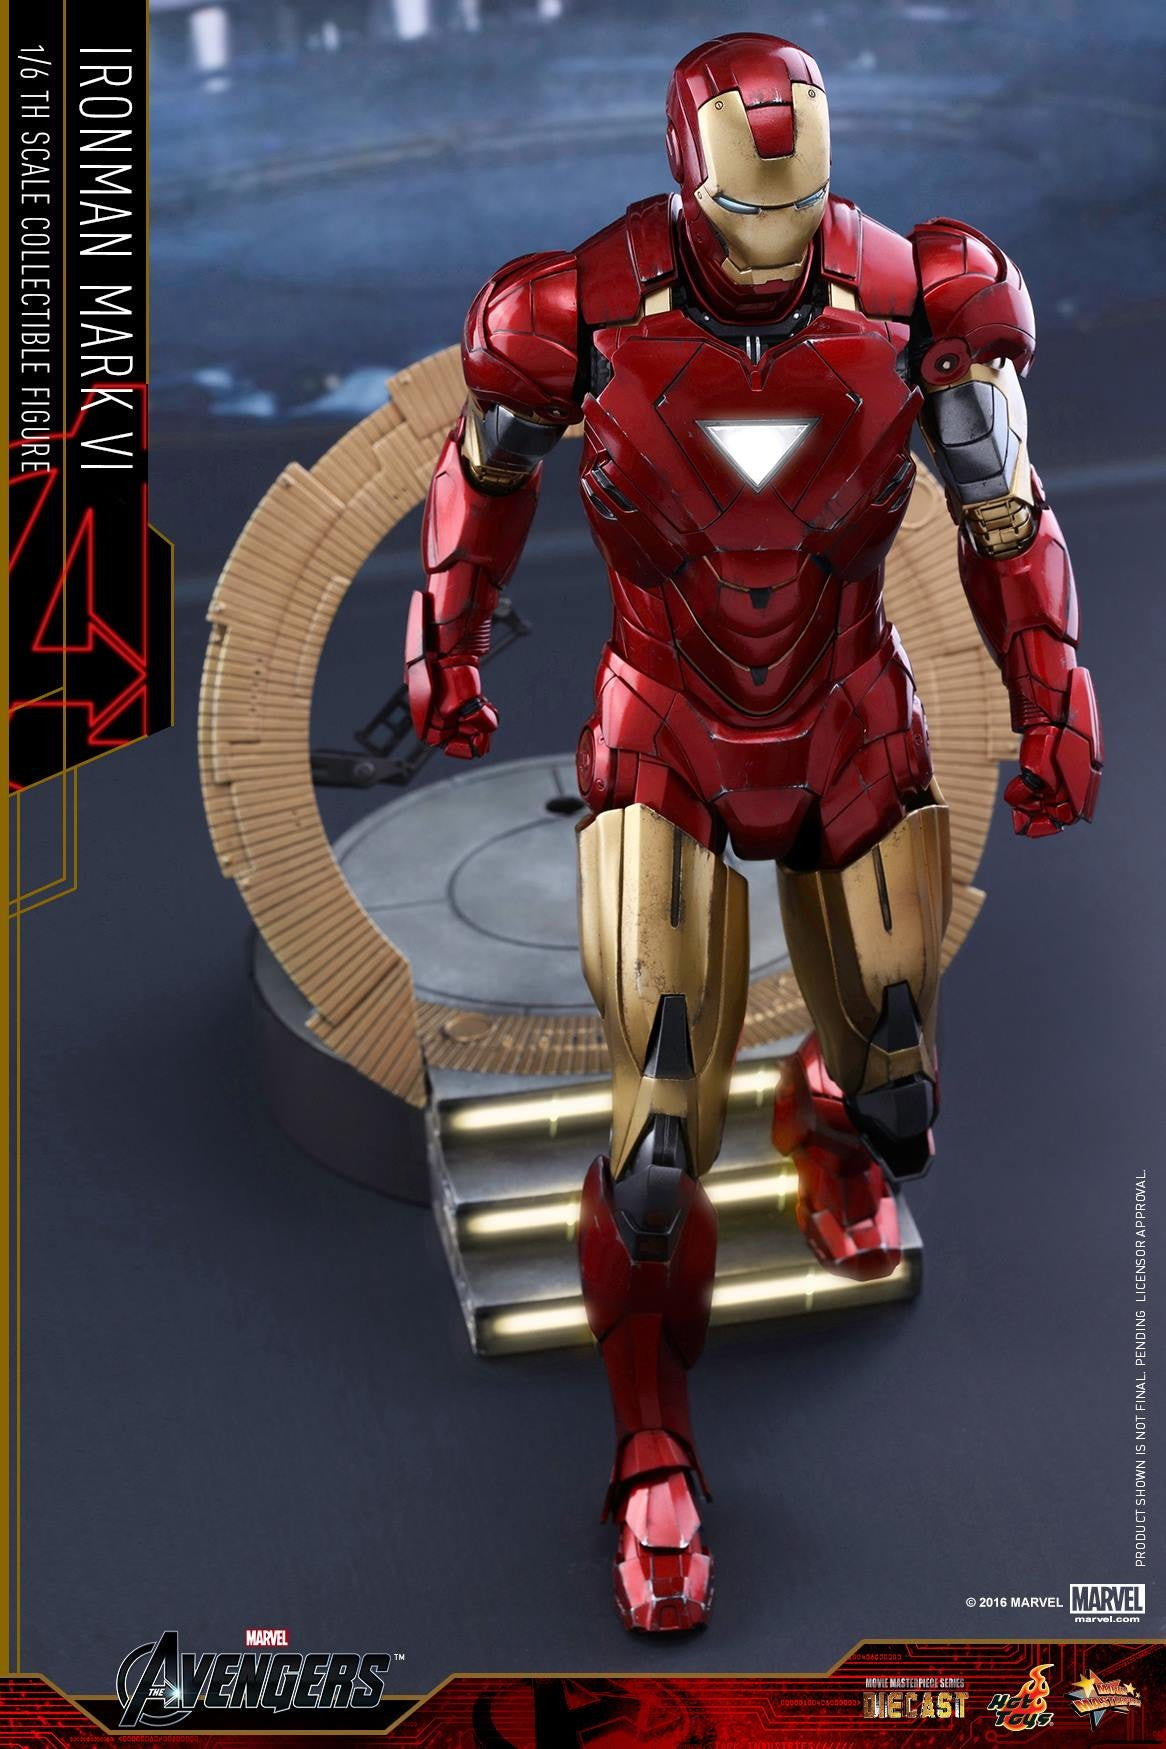 Hot Toys - MMS378D17 - The Avengers - Iron Man Mark VI (DIECAST) (Normal Edition) - Marvelous Toys - 8